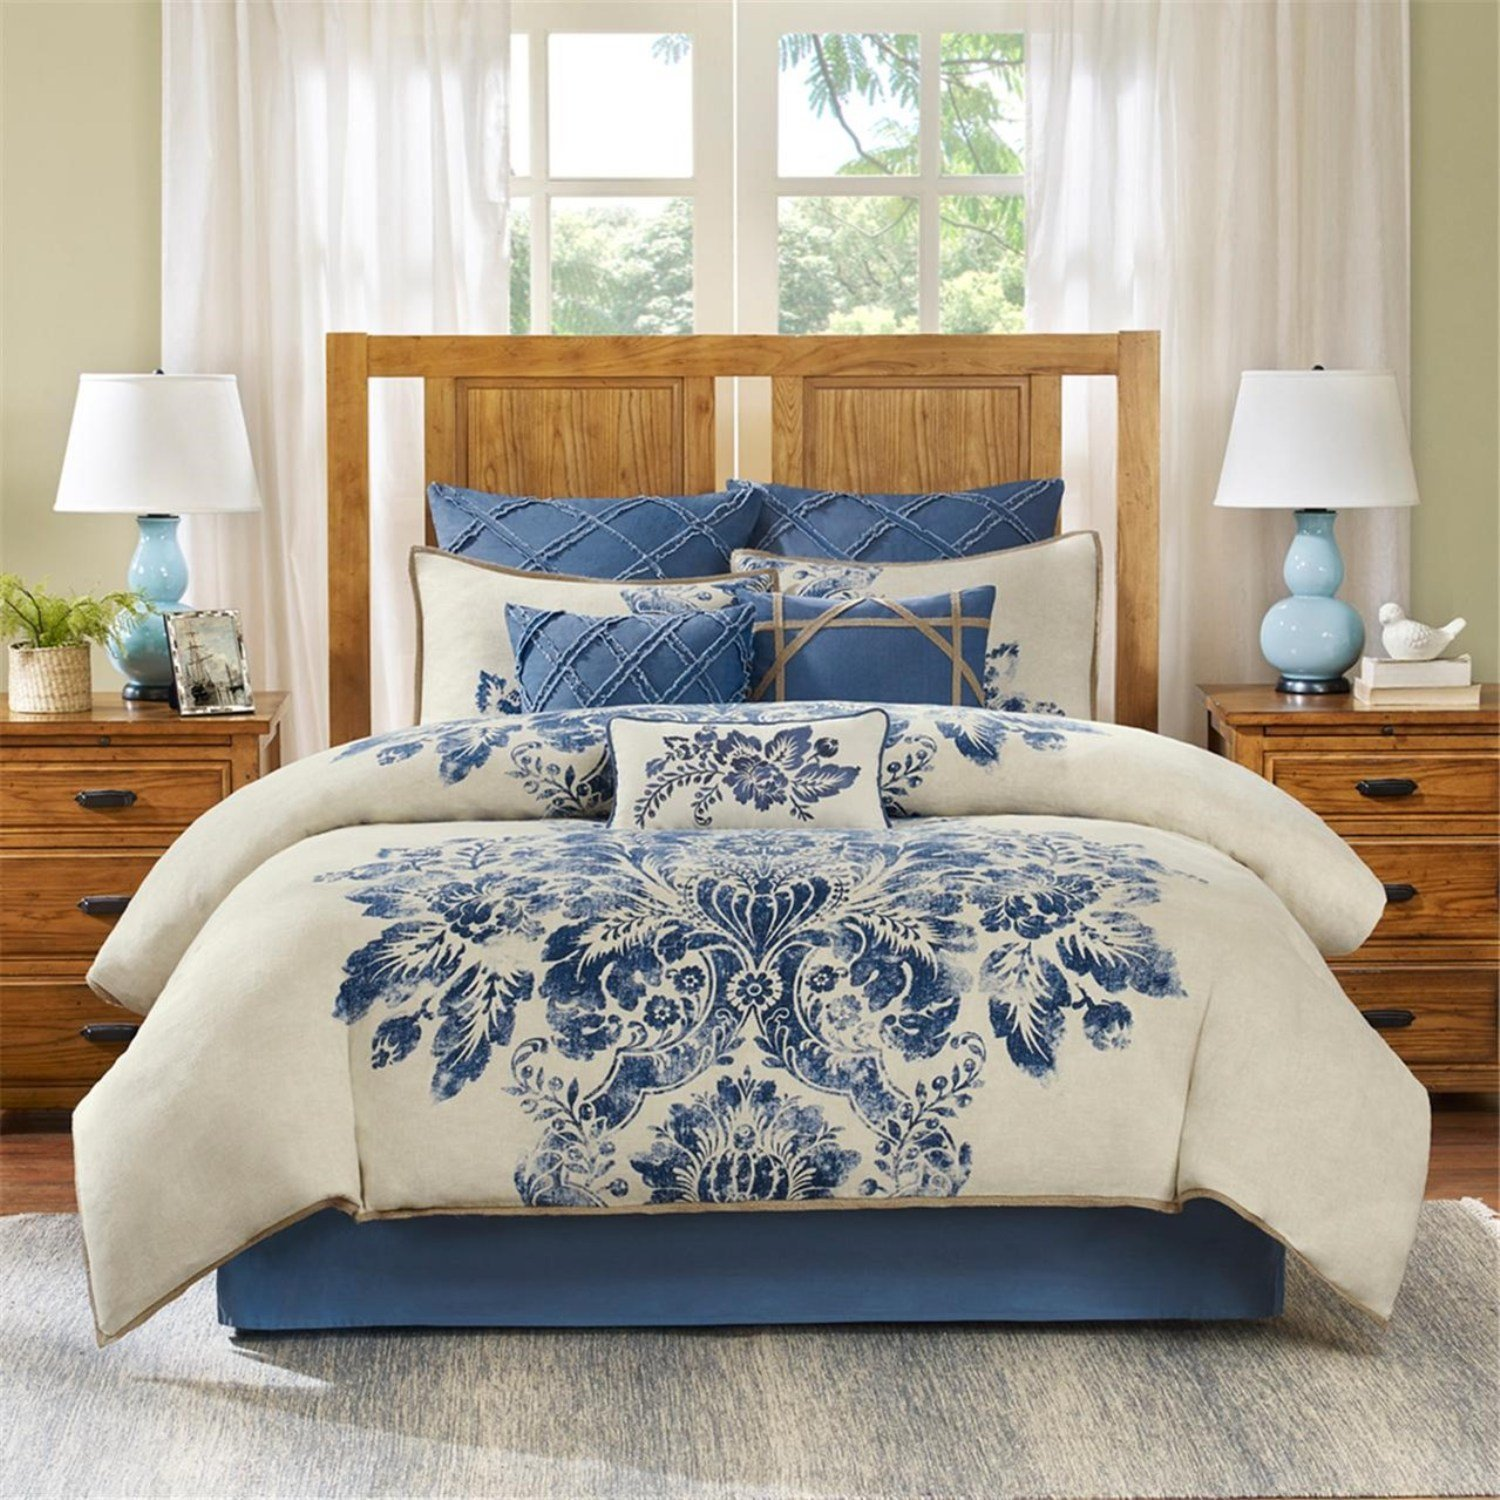 Harbor House St. Tropez 4 Piece Comforter Set, King, Multicolor